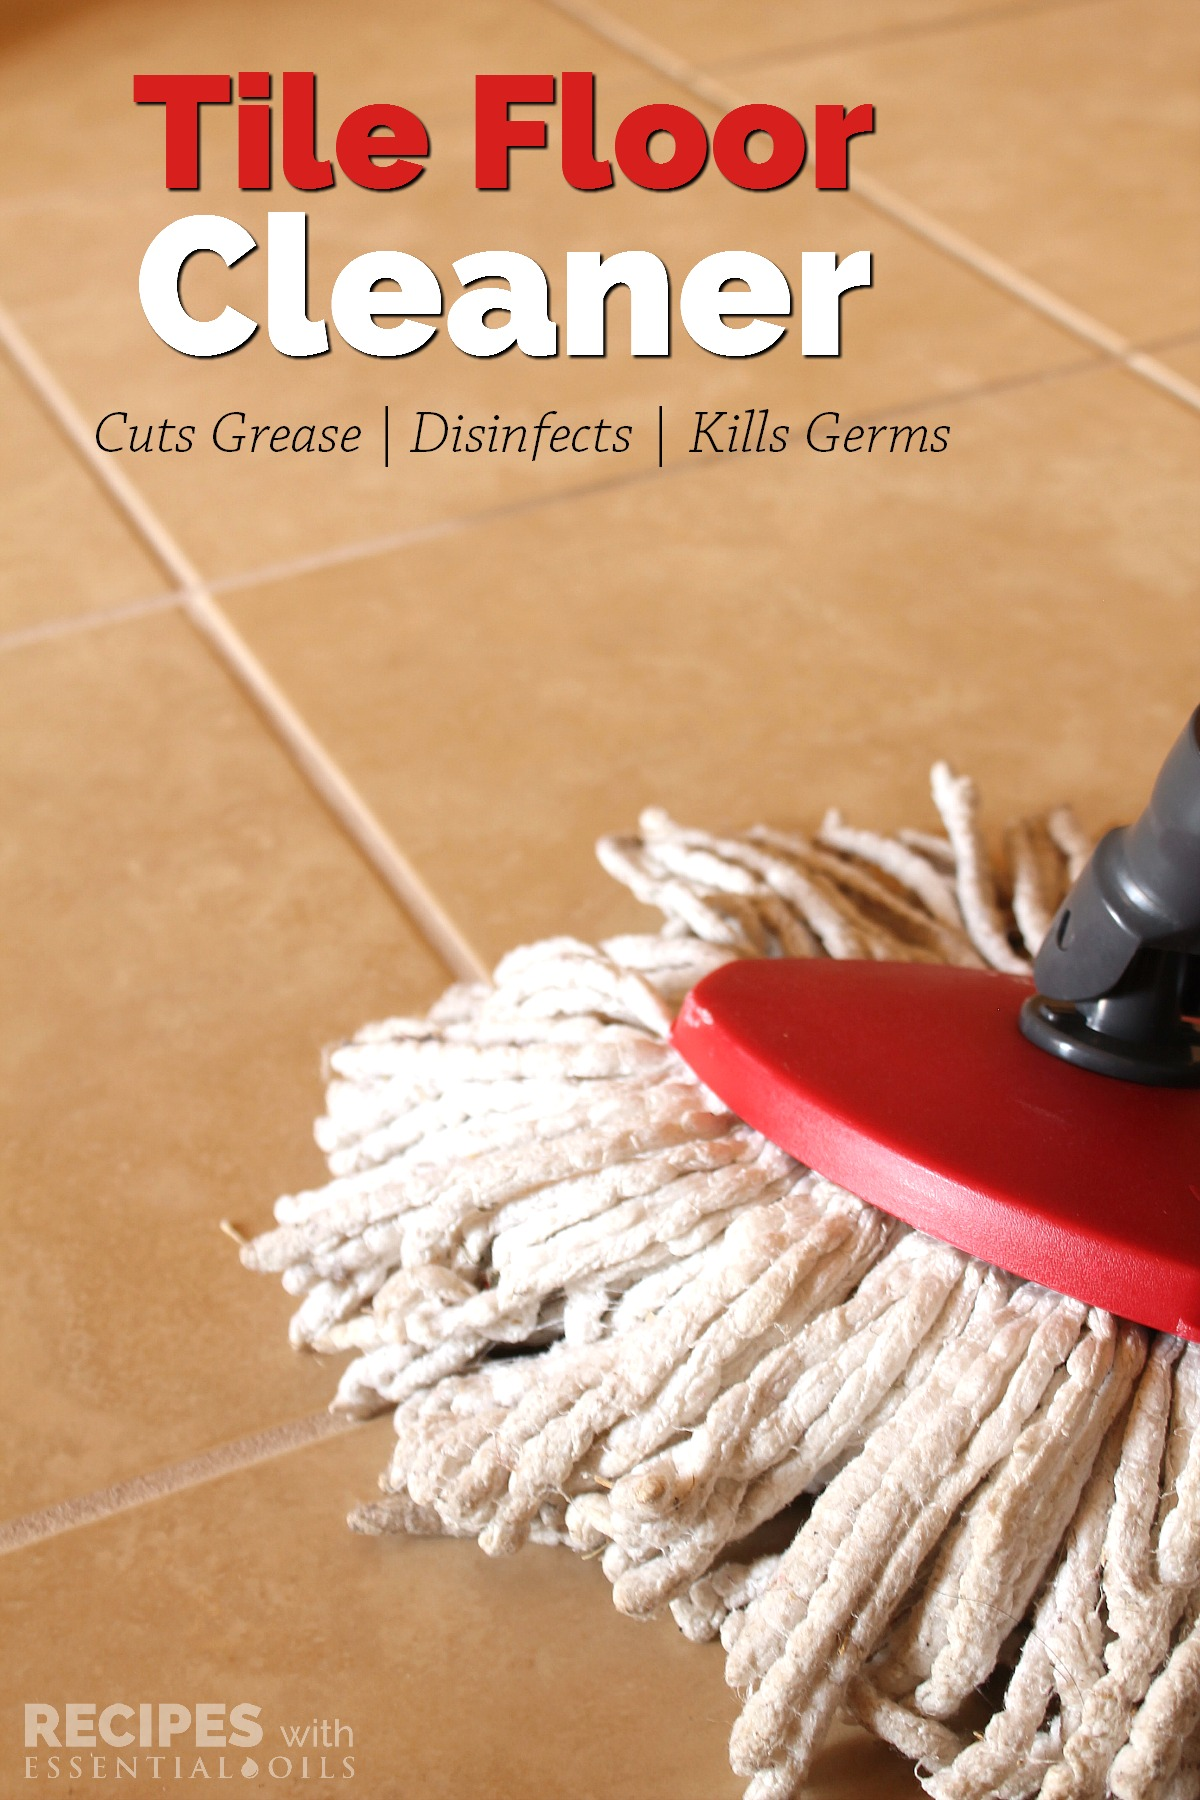 Homemade tile floor cleaner recipe recipes with essential oils homemade tile floor cleaner recpe from recipeswithessentialoils doublecrazyfo Image collections